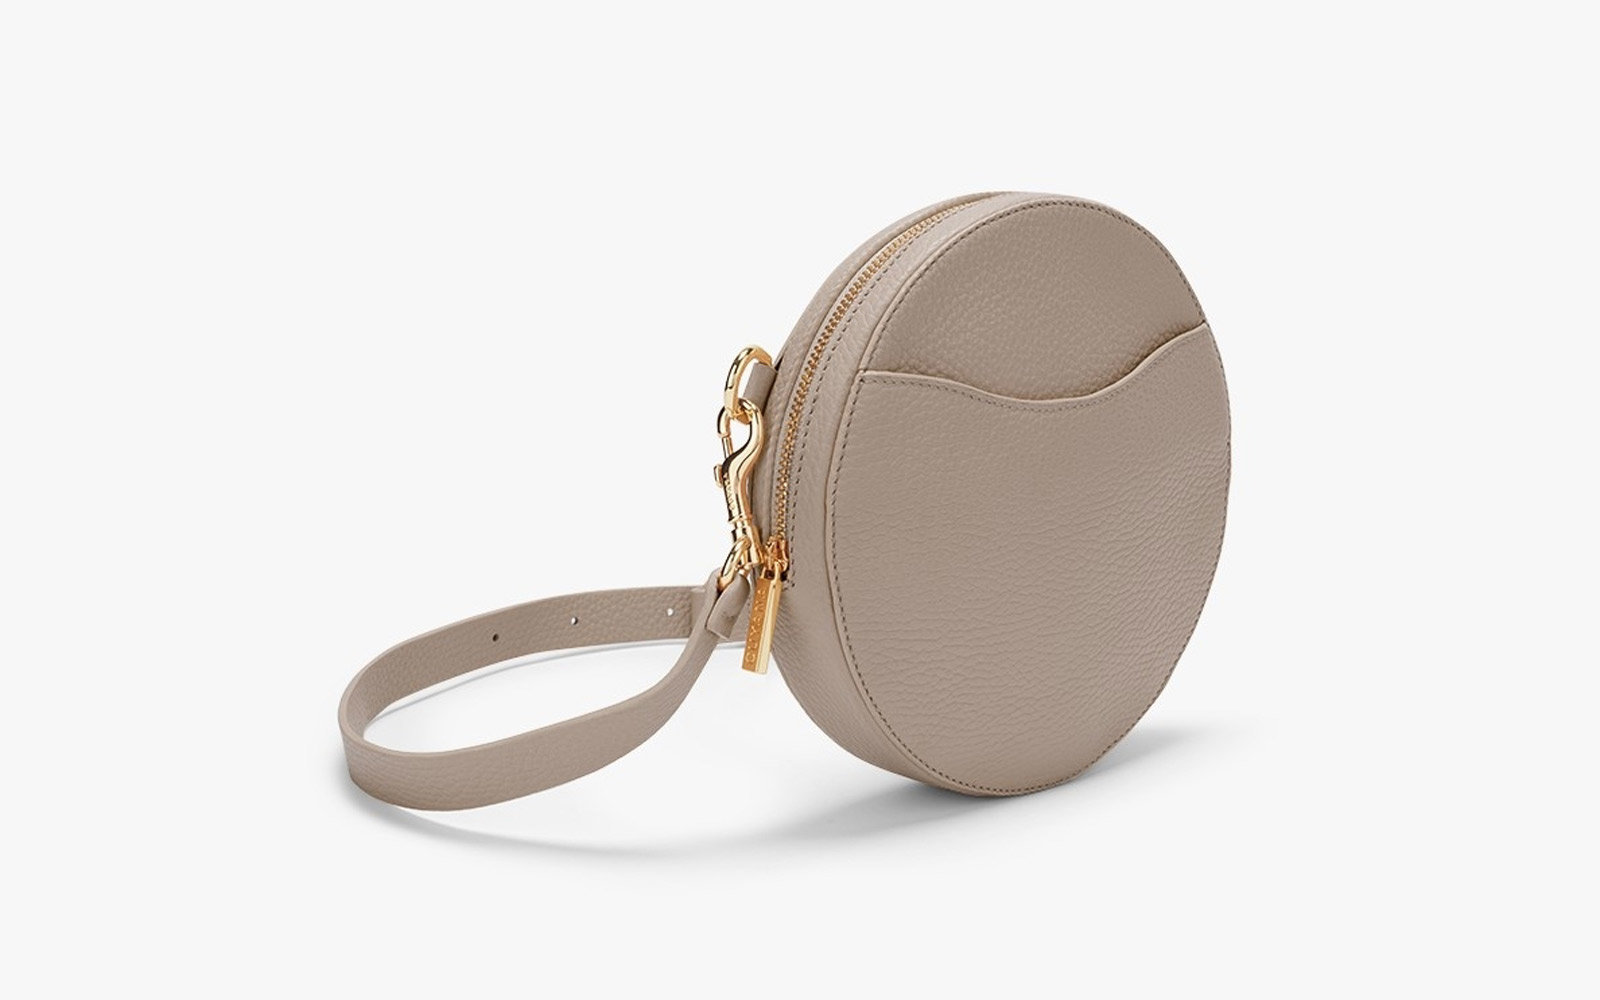 cuyana belt bag